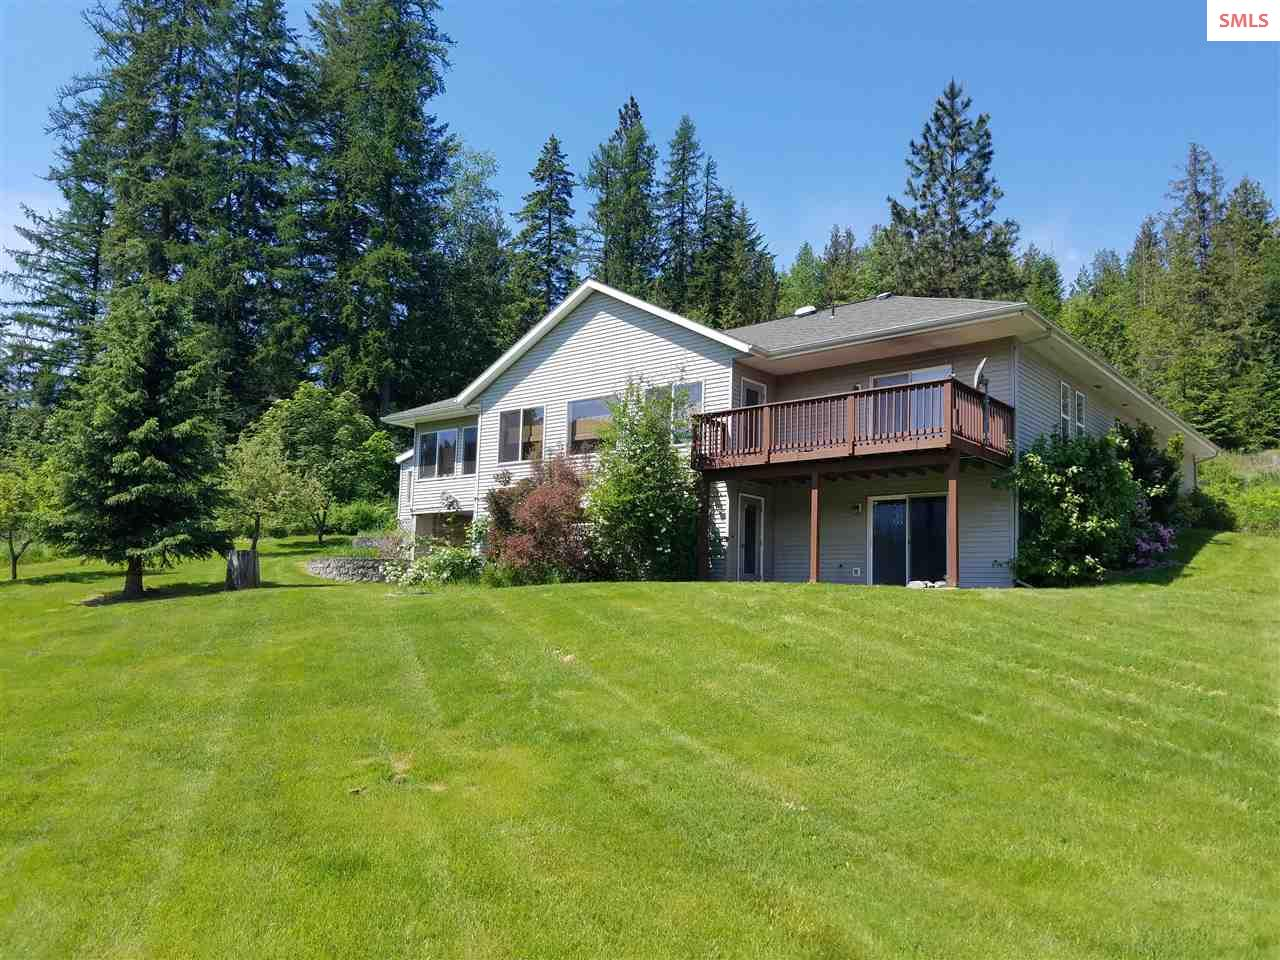 237 Lower Pack River Rd, Sandpoint, ID 83864